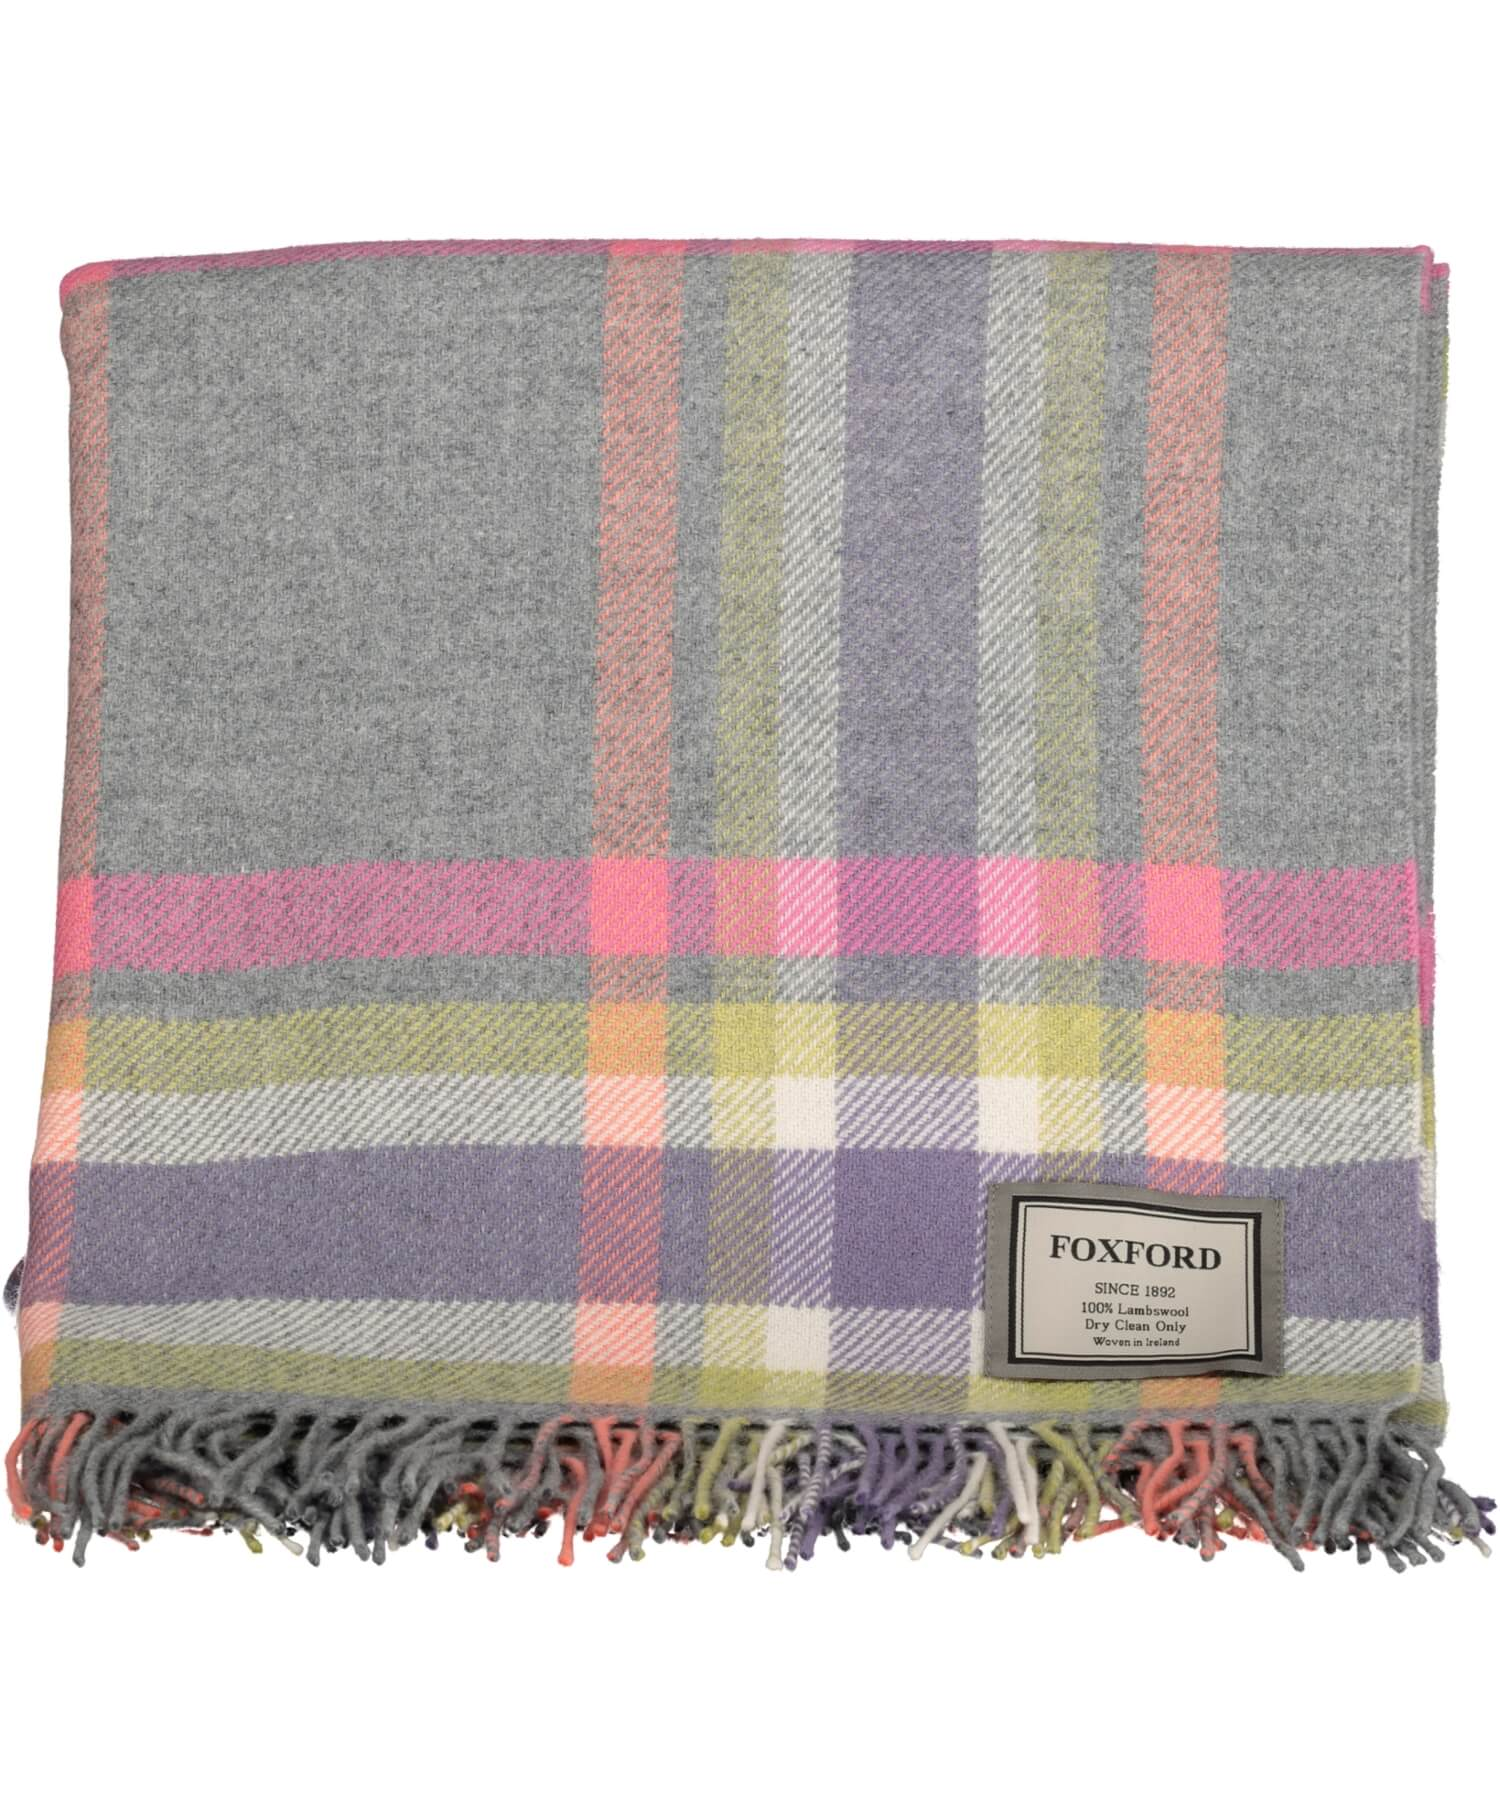 Lambswool Throw - Fiadh - [Foxford] - Throws & Cushions - Irish Gifts